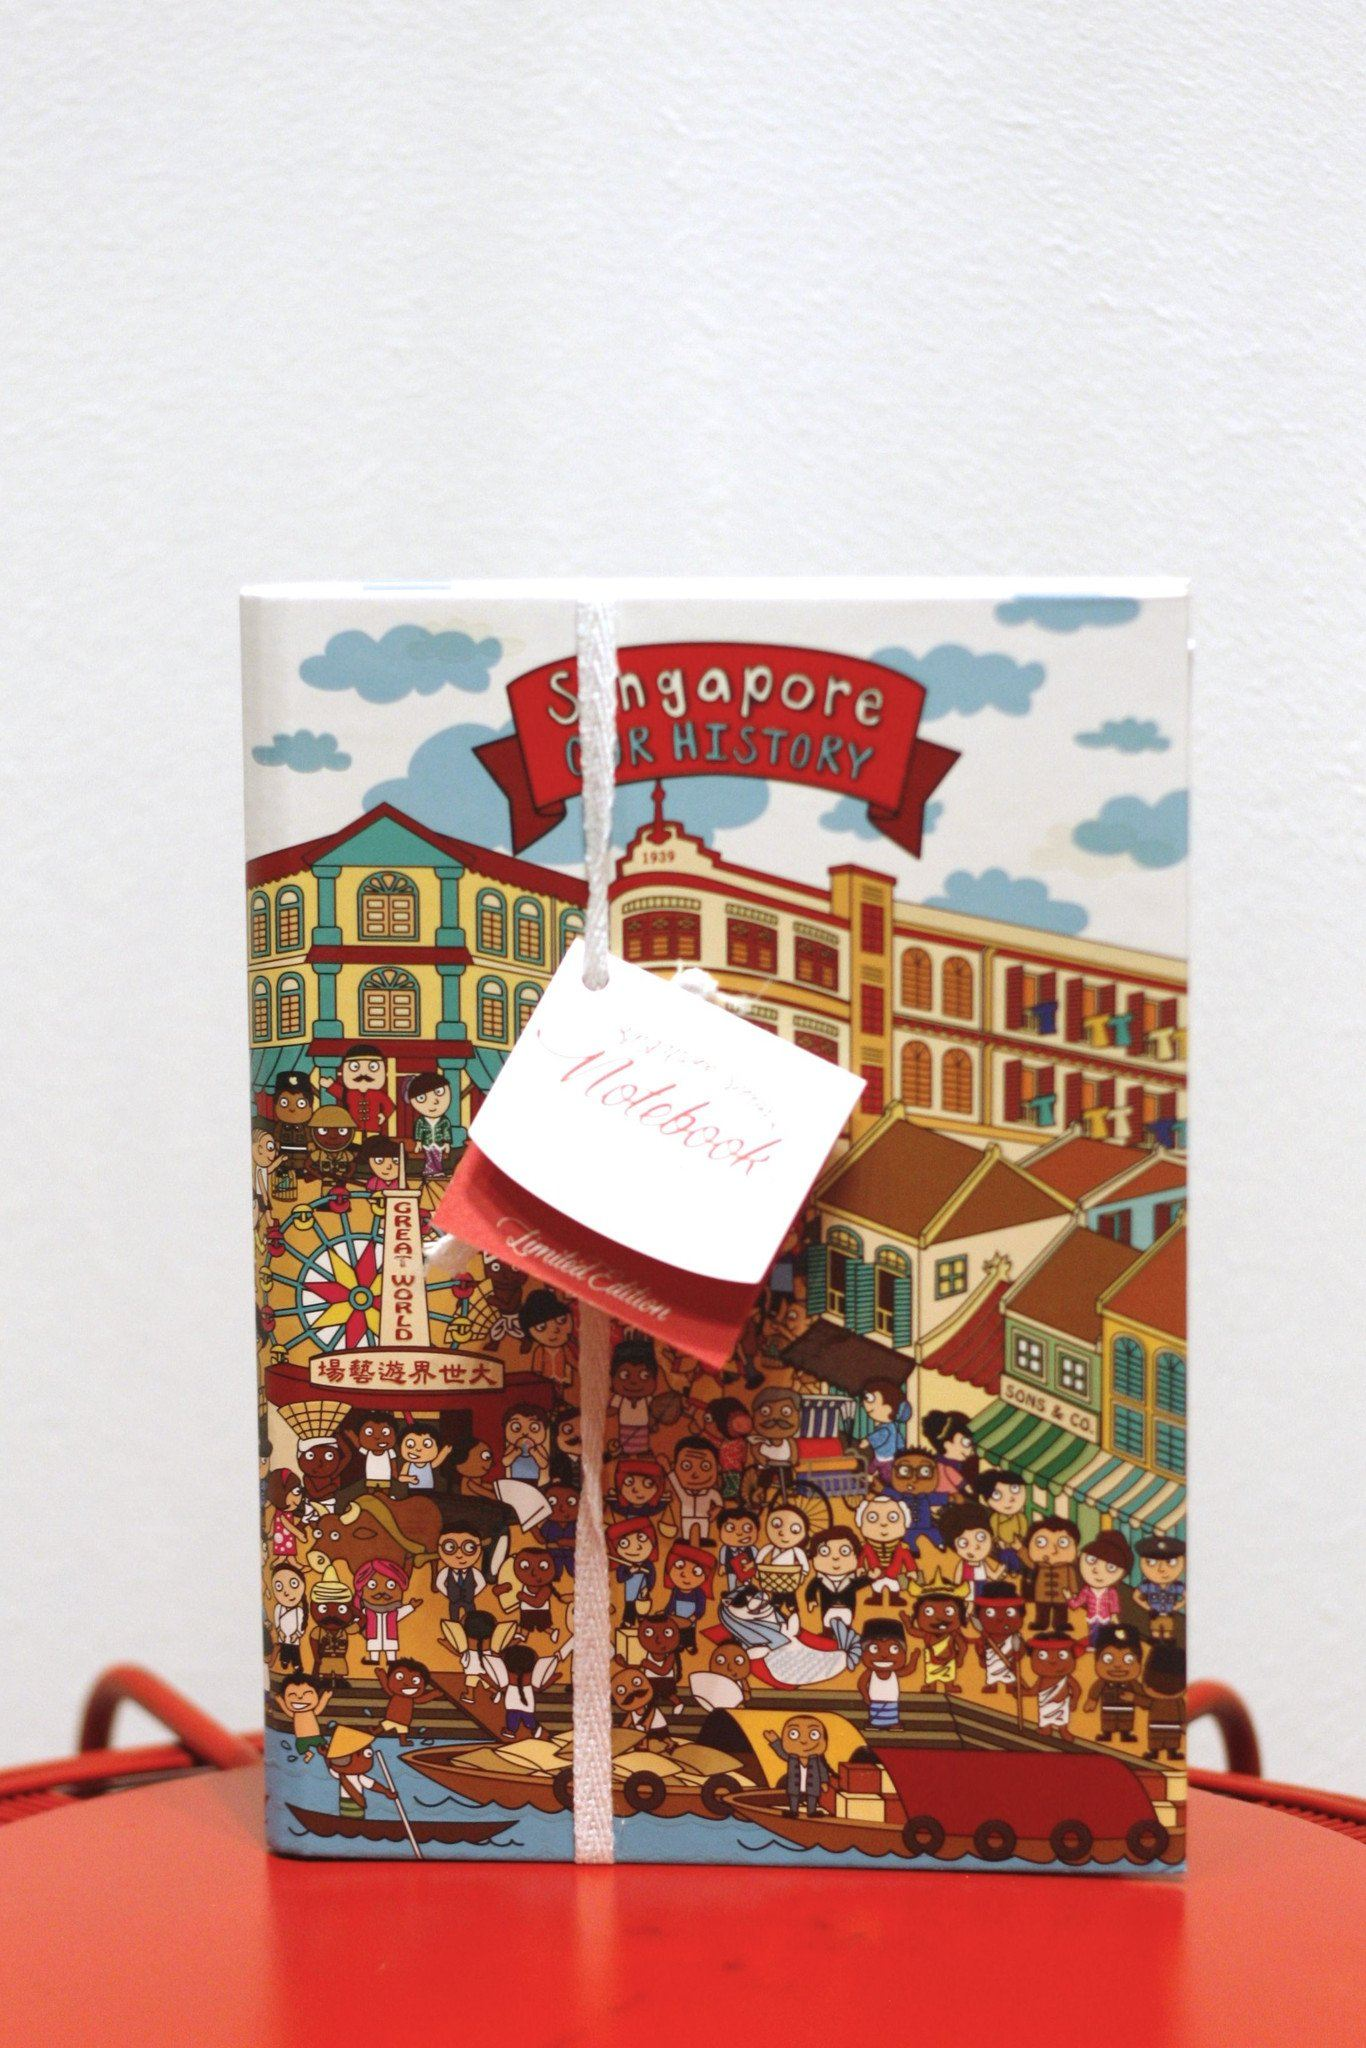 Singapore Series A5 Notebook - Local Notebooks - Little Red Box - Naiise